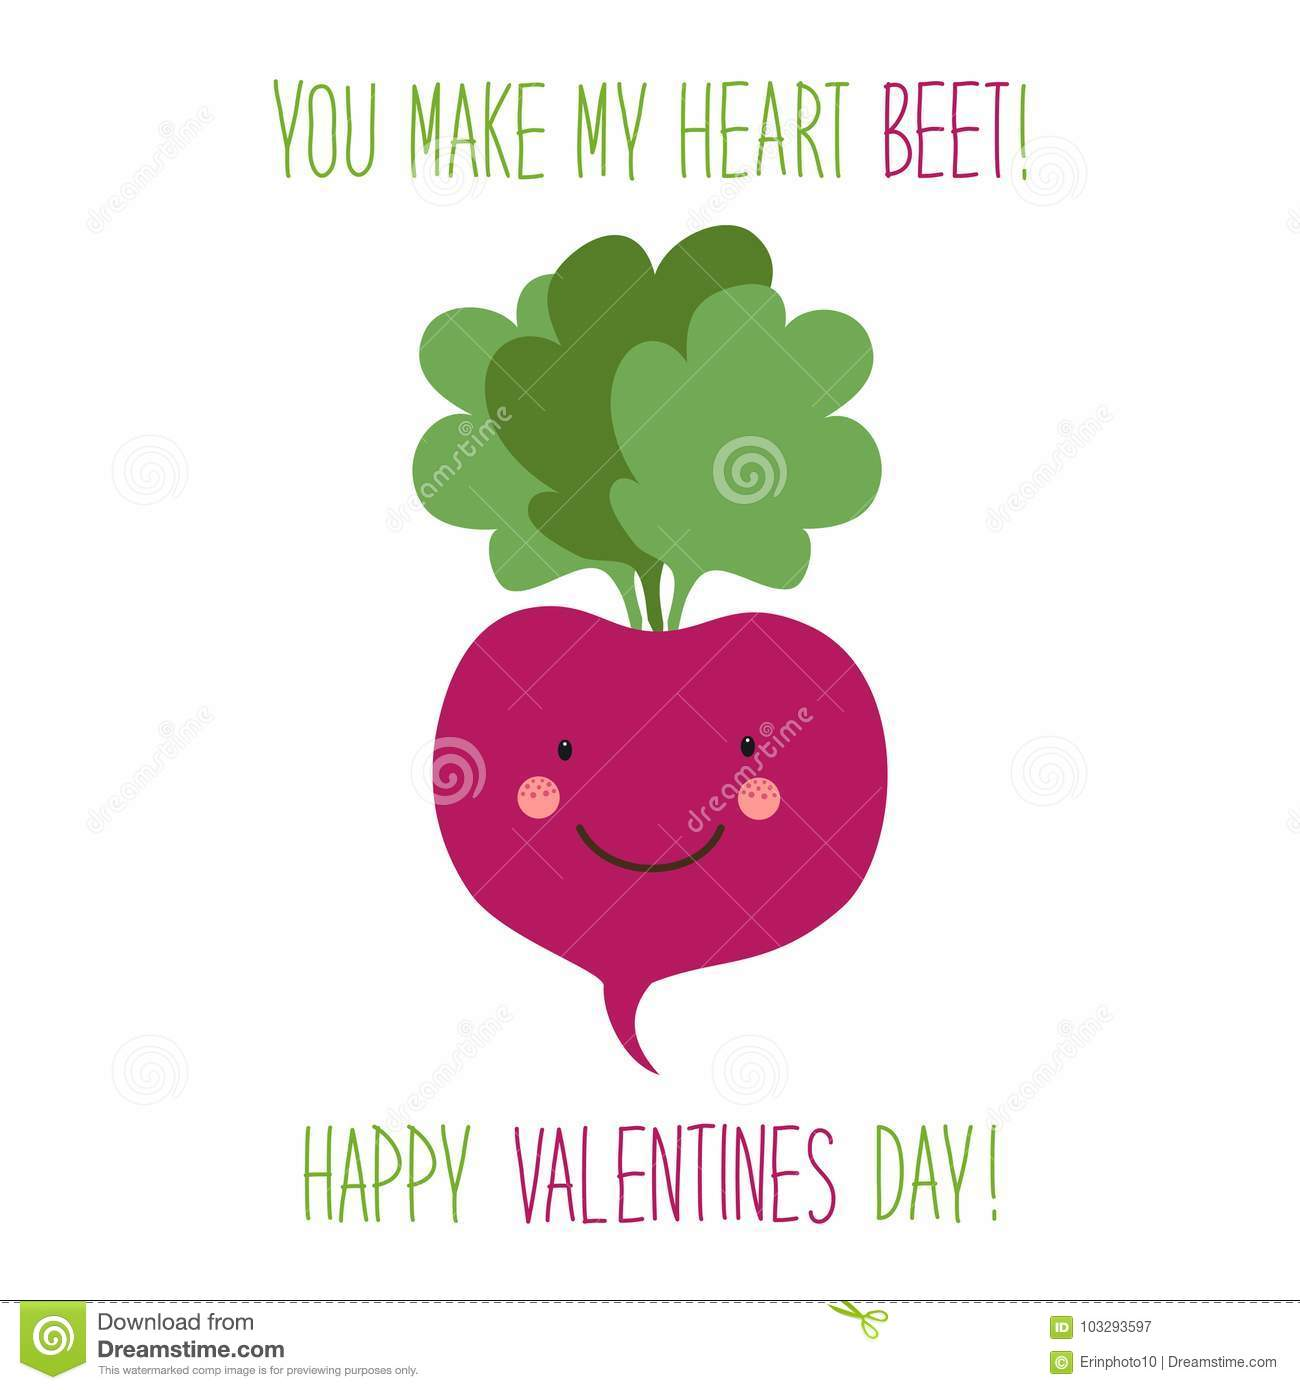 Cute unusual hand drawn Valentines Day card with funny cartoon characters of beet